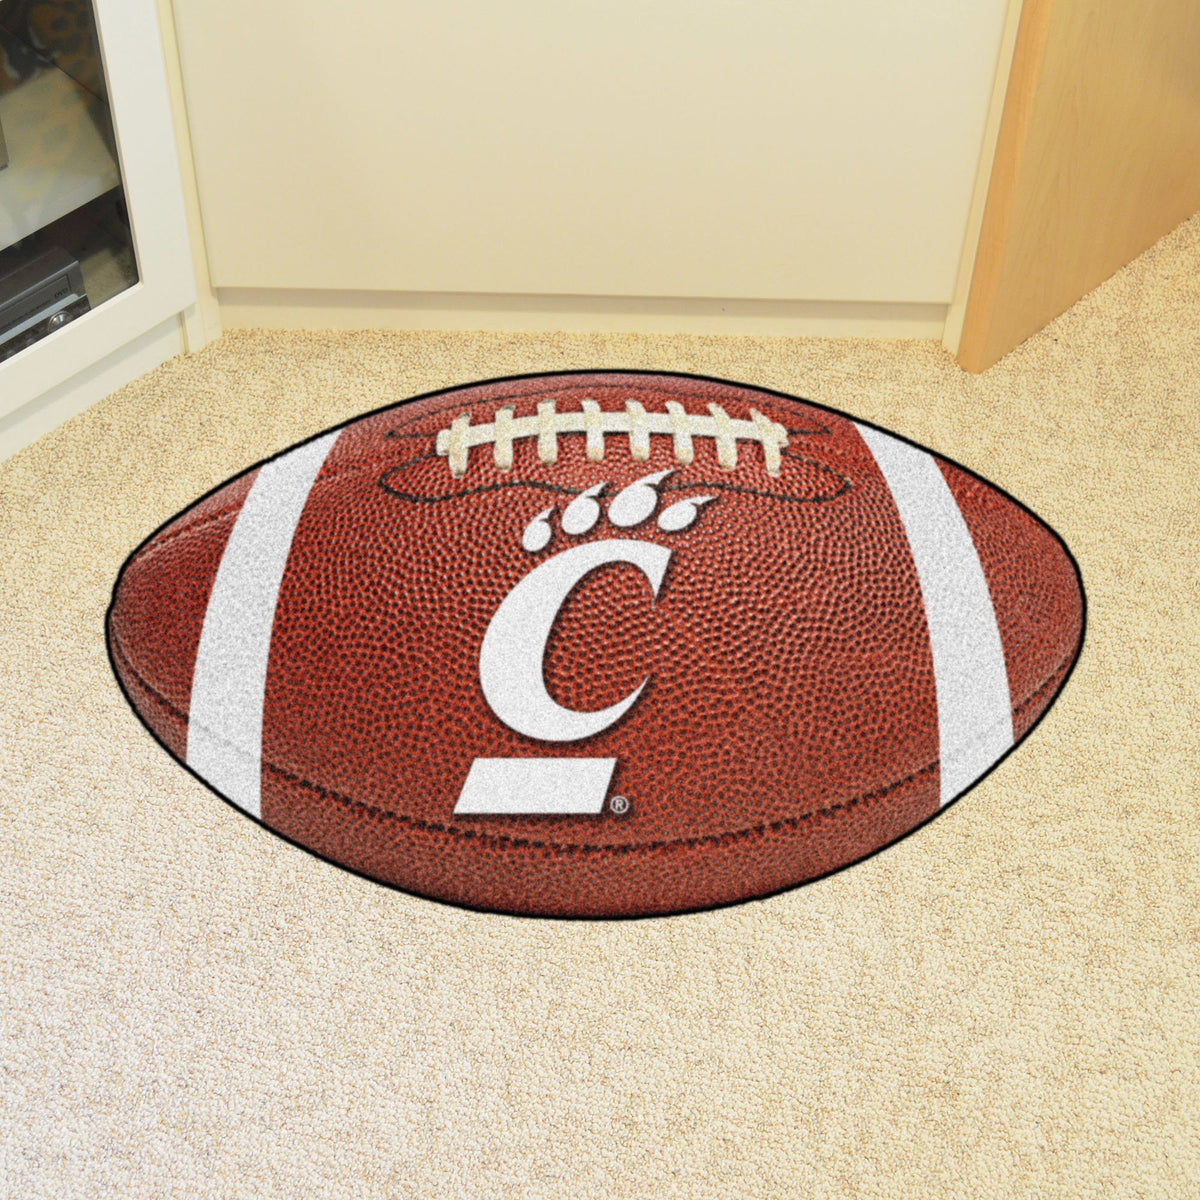 Collegiate - Football Mat: A - K Collegiate Mats, Rectangular Mats, Football Mat, Collegiate, Home Fan Mats Cincinnati